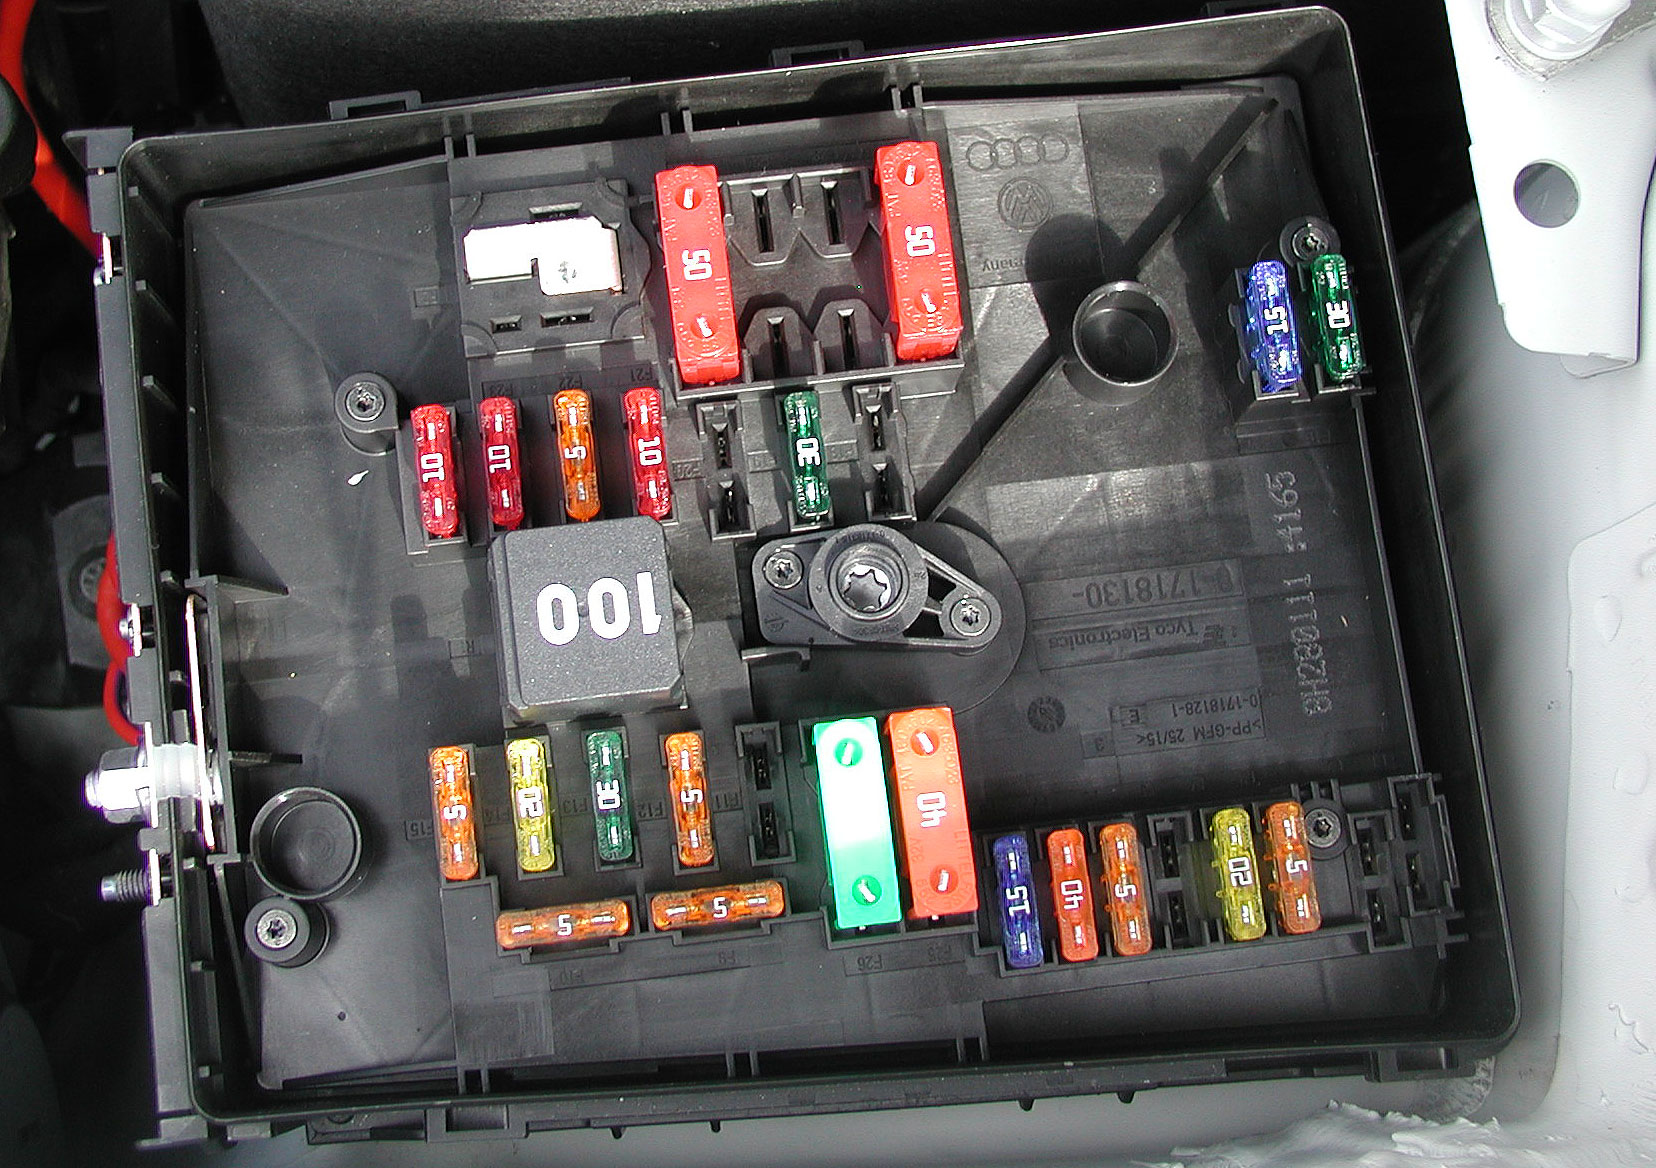 BA3B14 2009 Jetta Fuse Box | Wiring Resources 2019